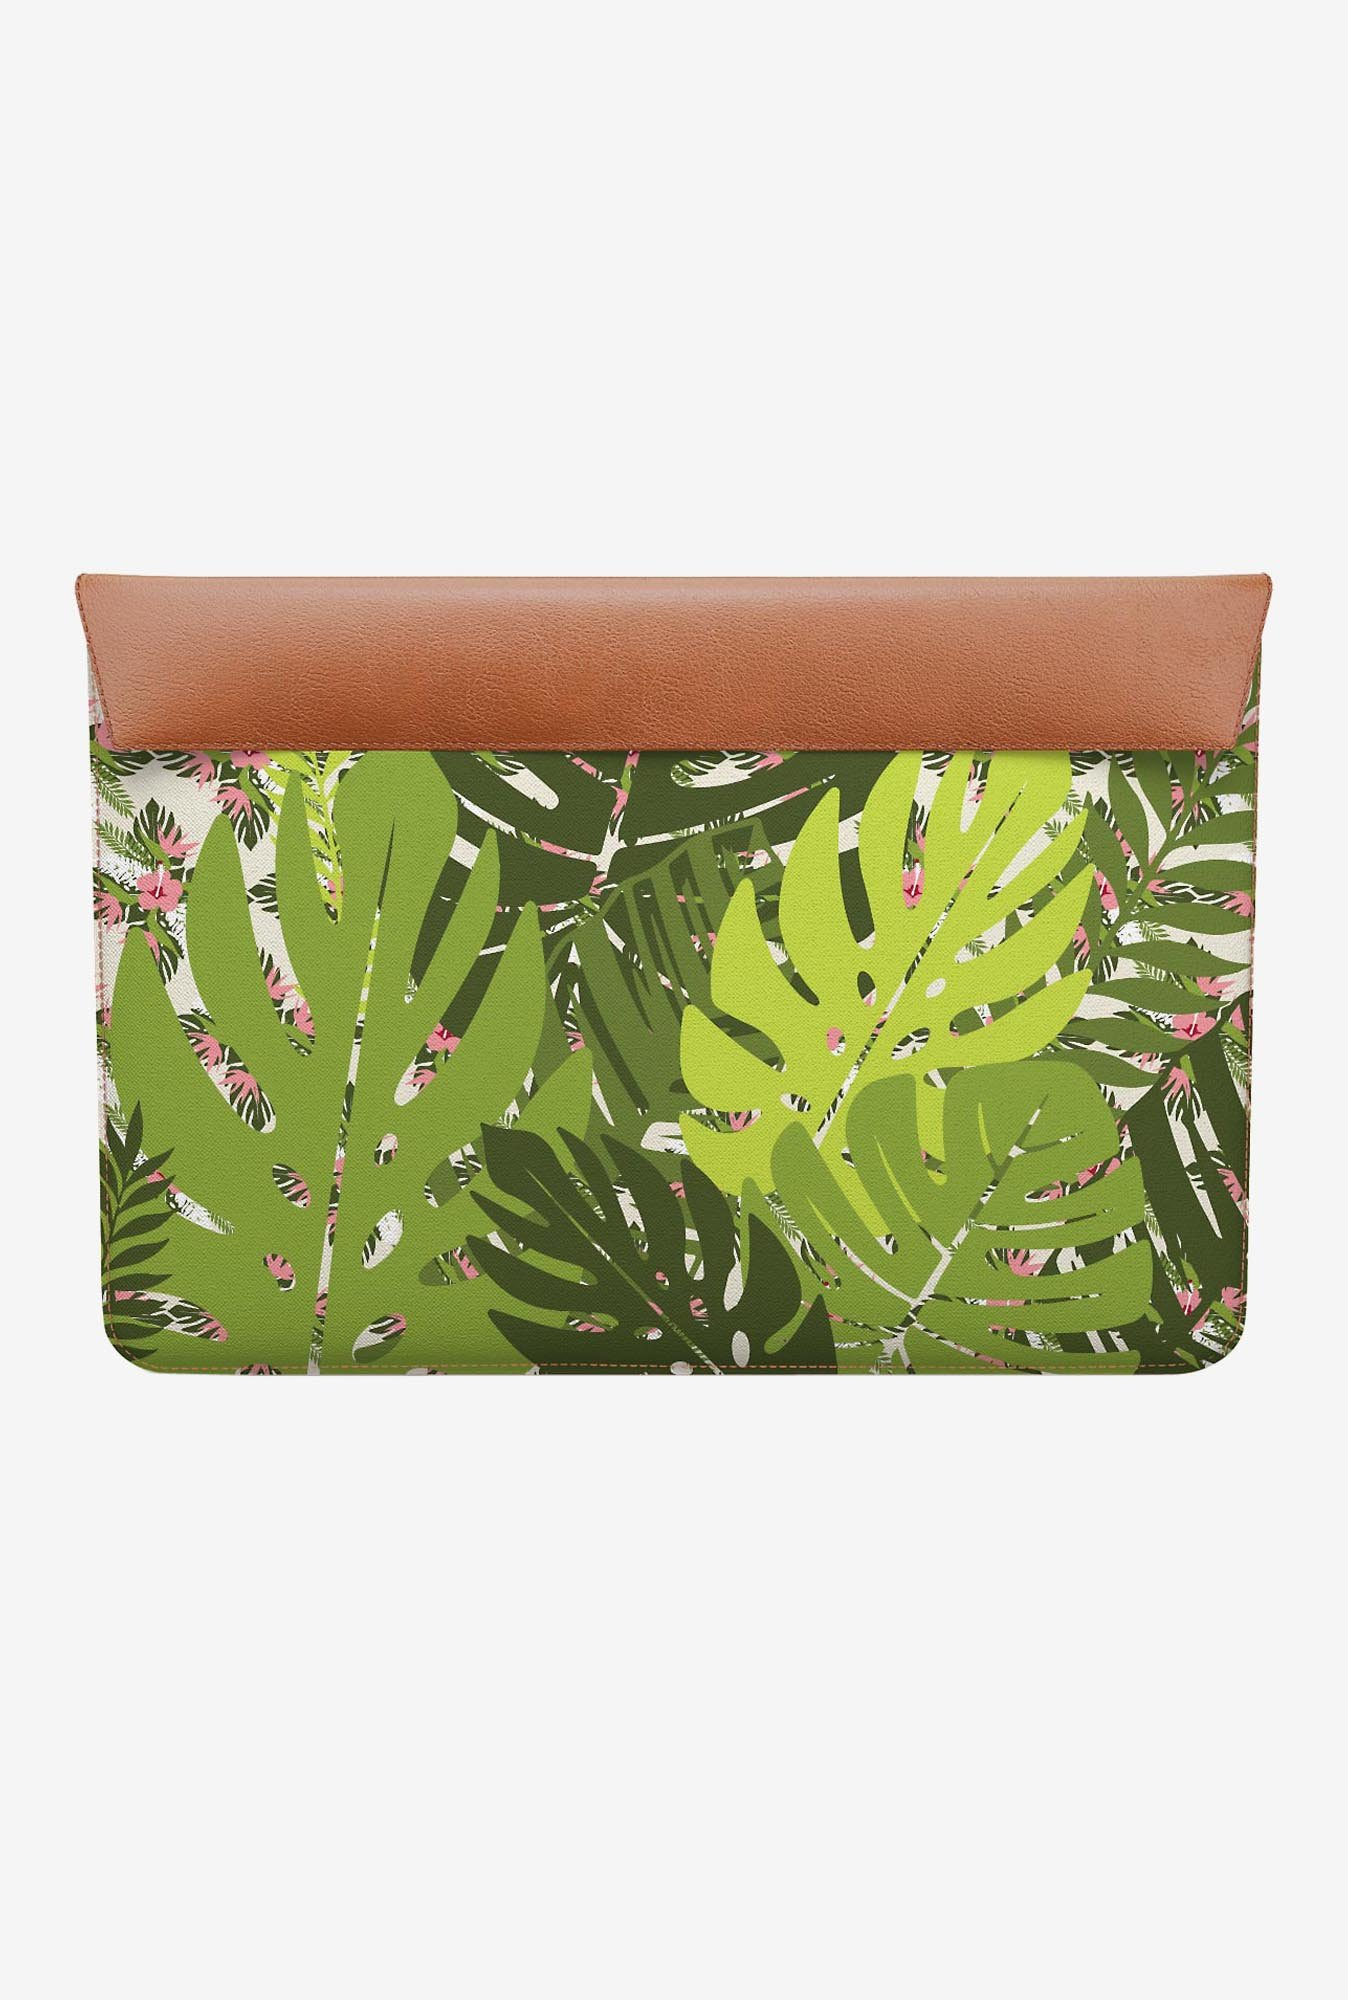 DailyObjects Tropical Ferns MacBook Air 13 Envelope Sleeve